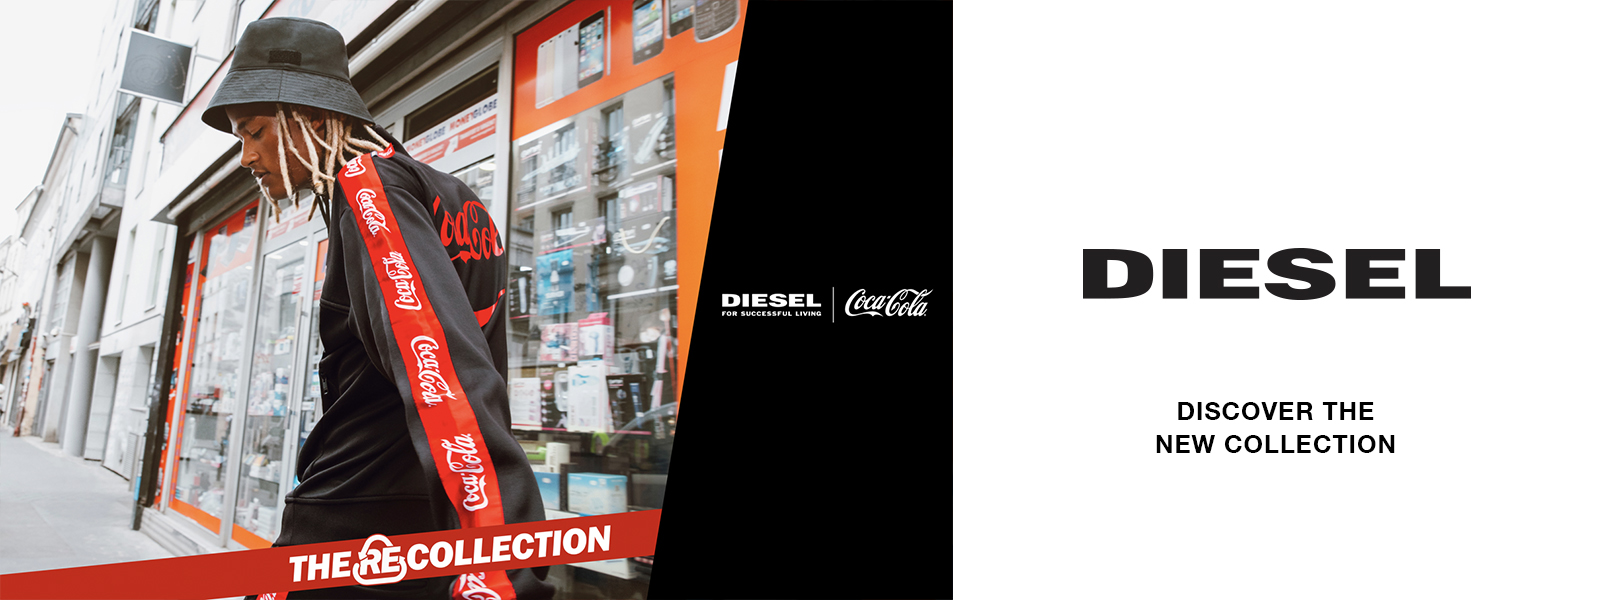 Diesel - Discover The New Collection